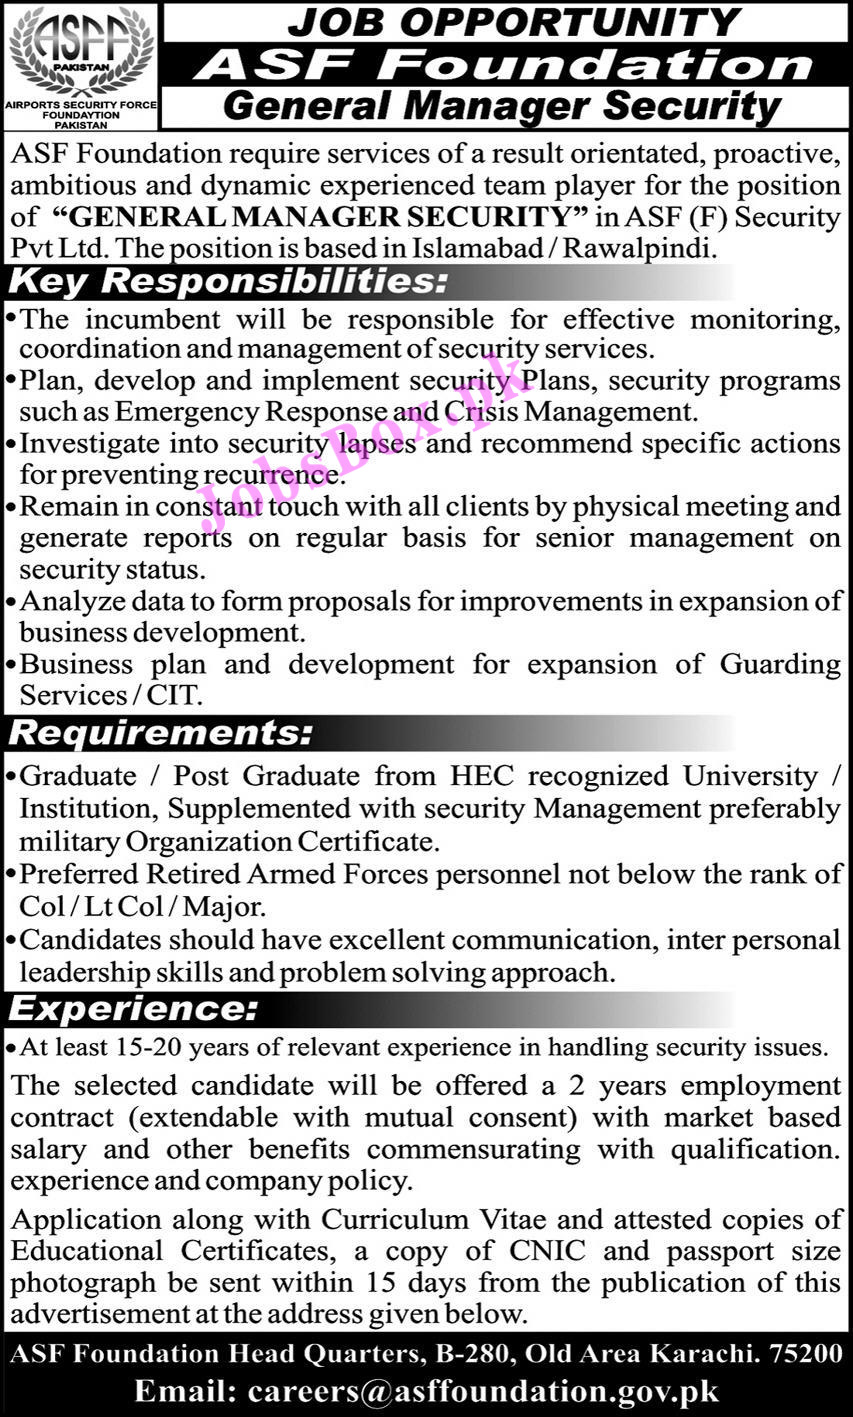 ASF jobs 2021 || Join ASF || Airport Security Force Jobs 2021 || Full information